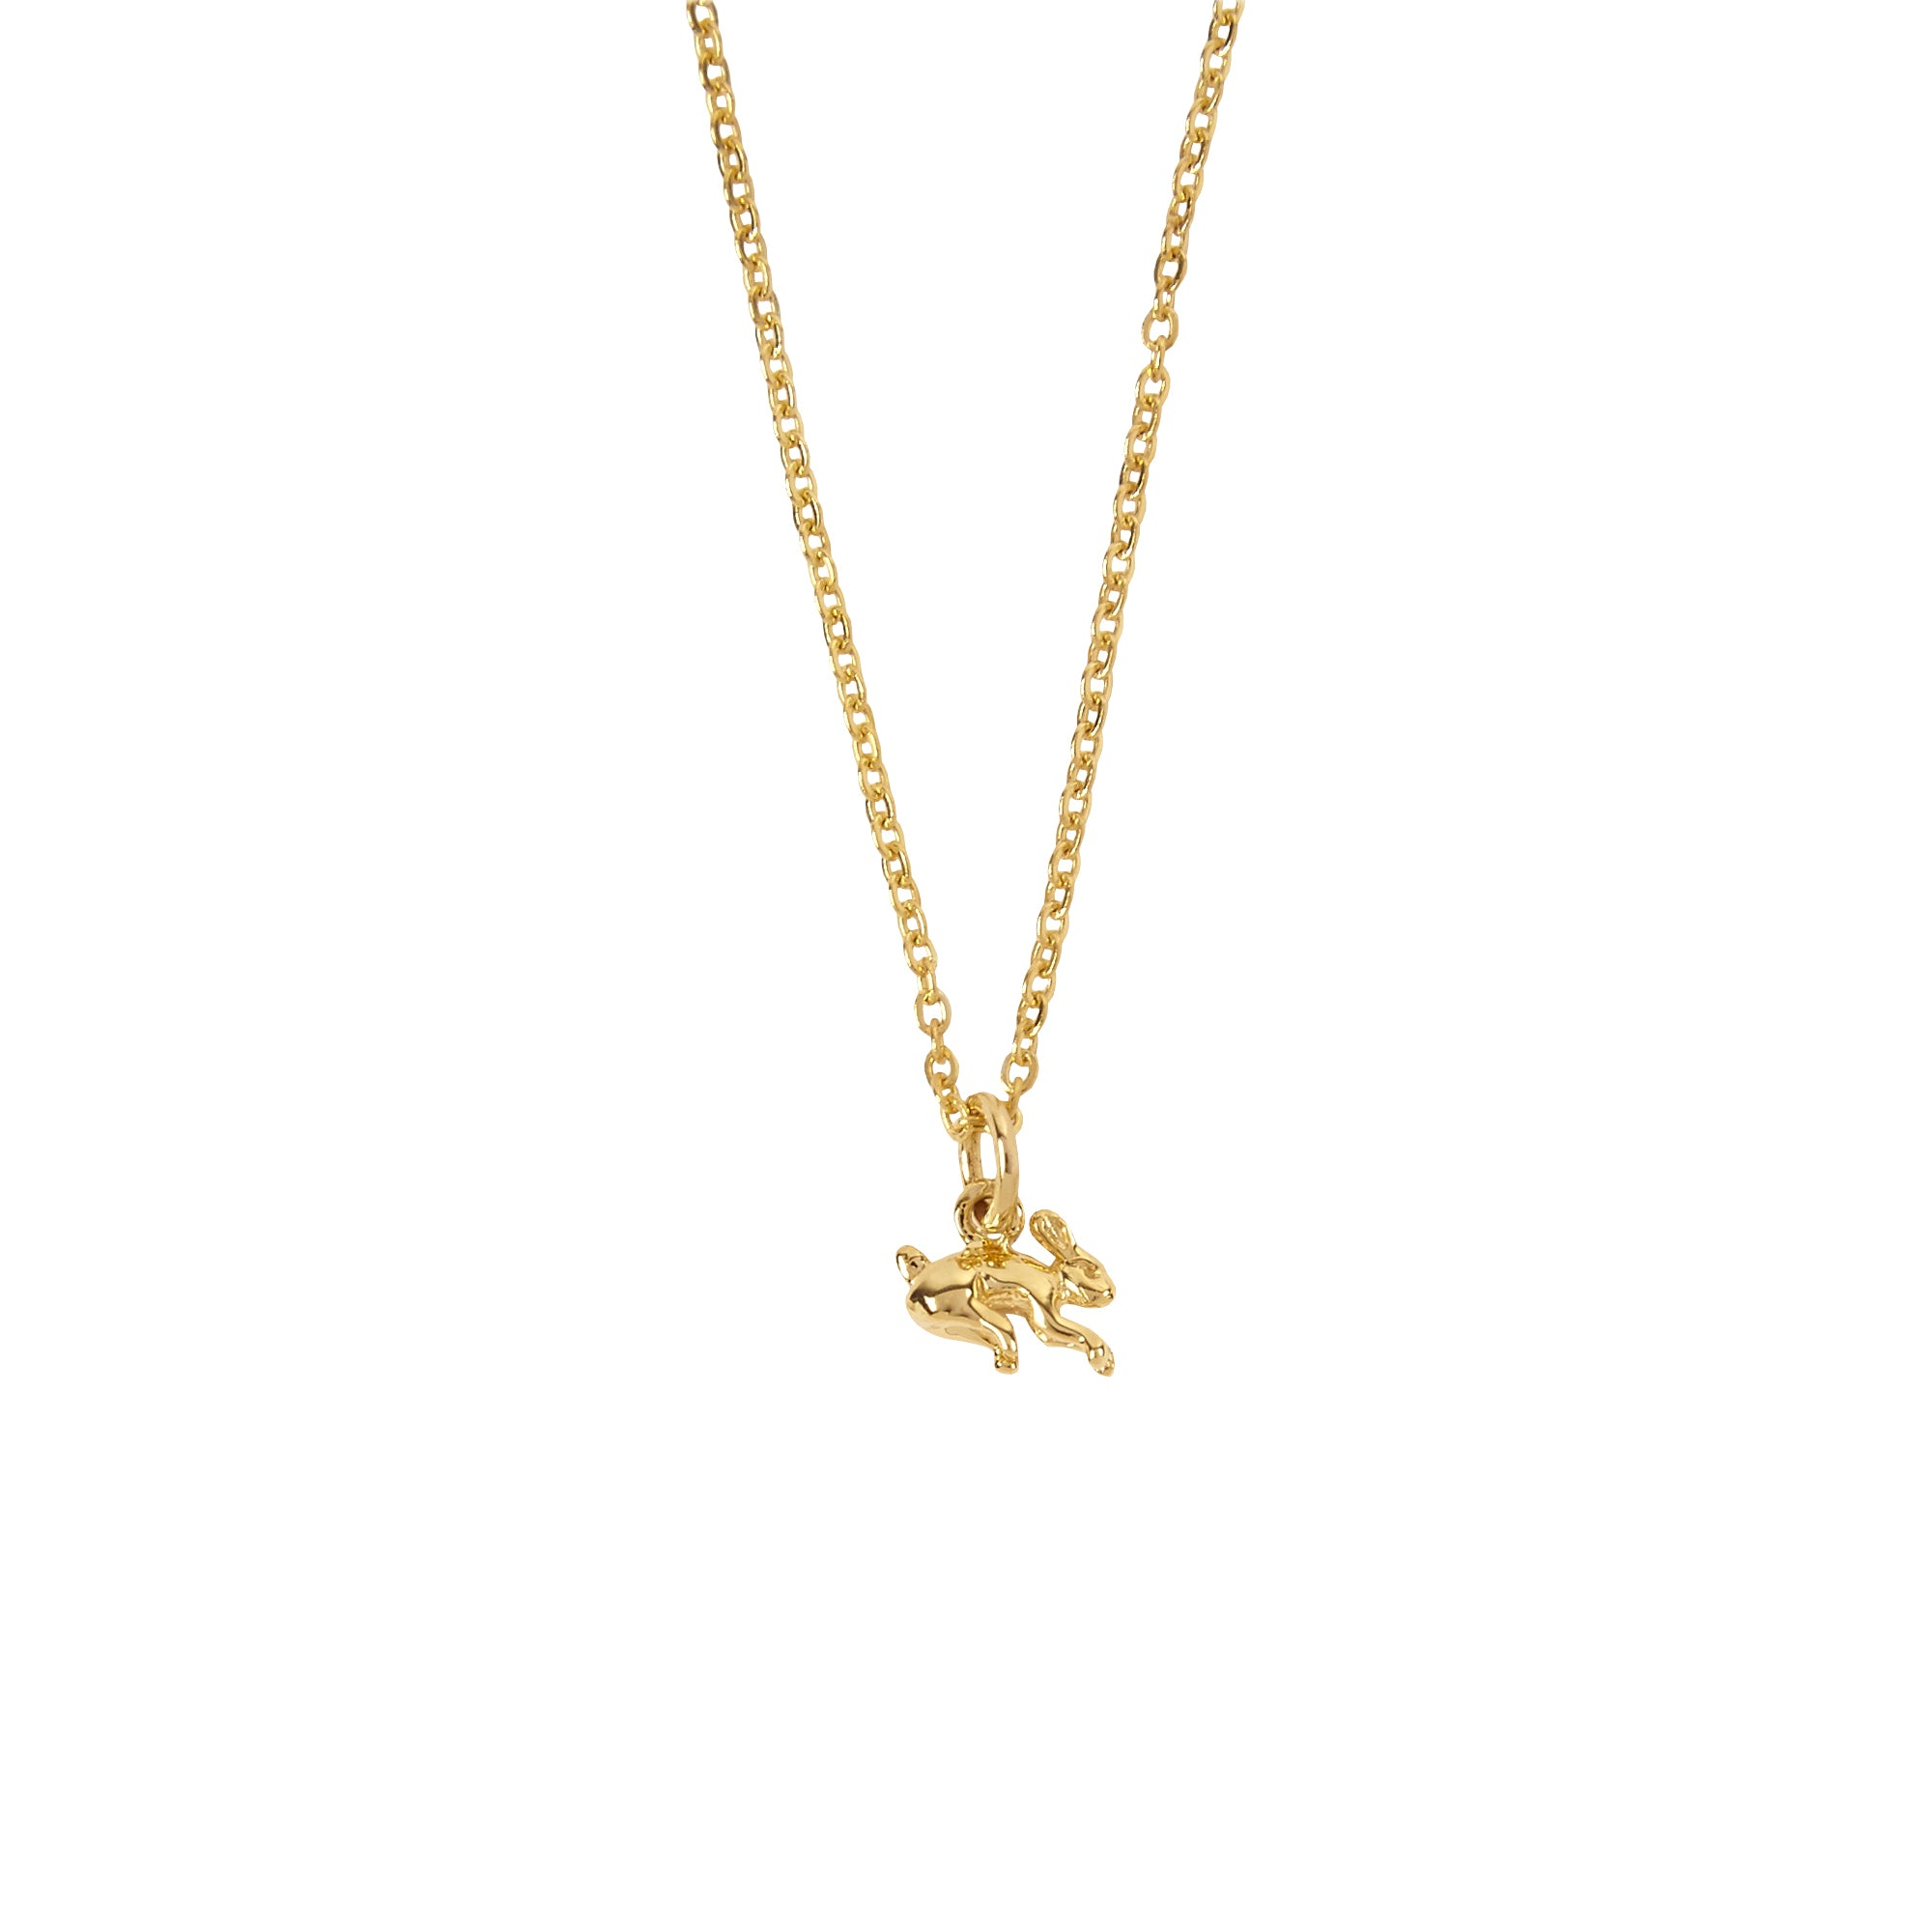 Patcharavipa Tiny Rabbit Necklace - Necklaces - Broken English Jewelry